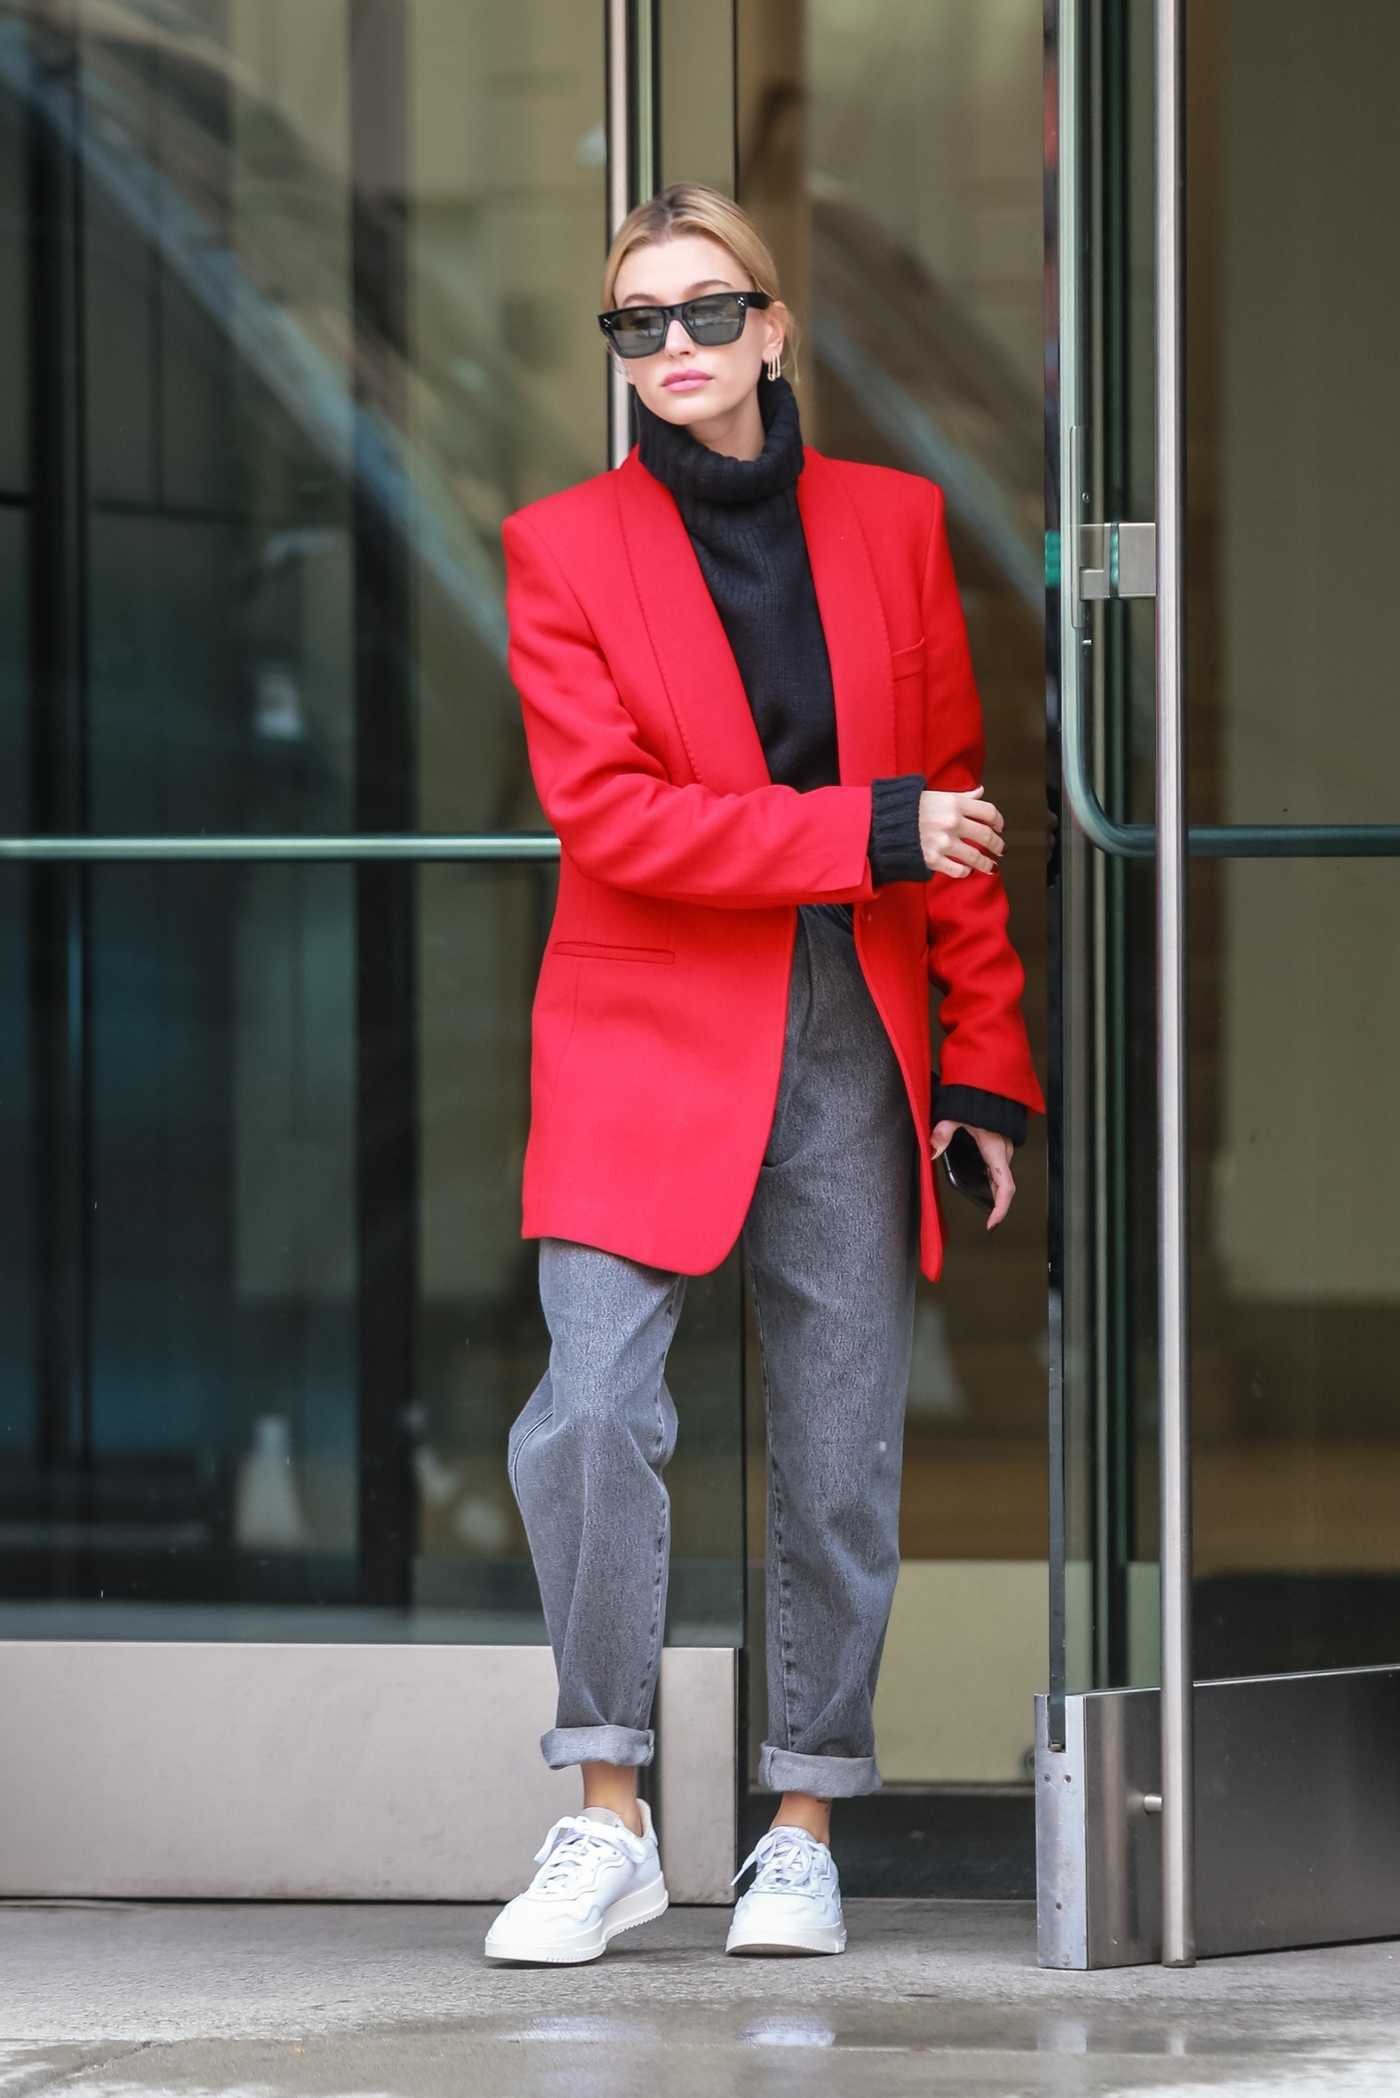 Hailey Baldwin in a Red Blazer Was Seen Out in NYC 03/08/2019